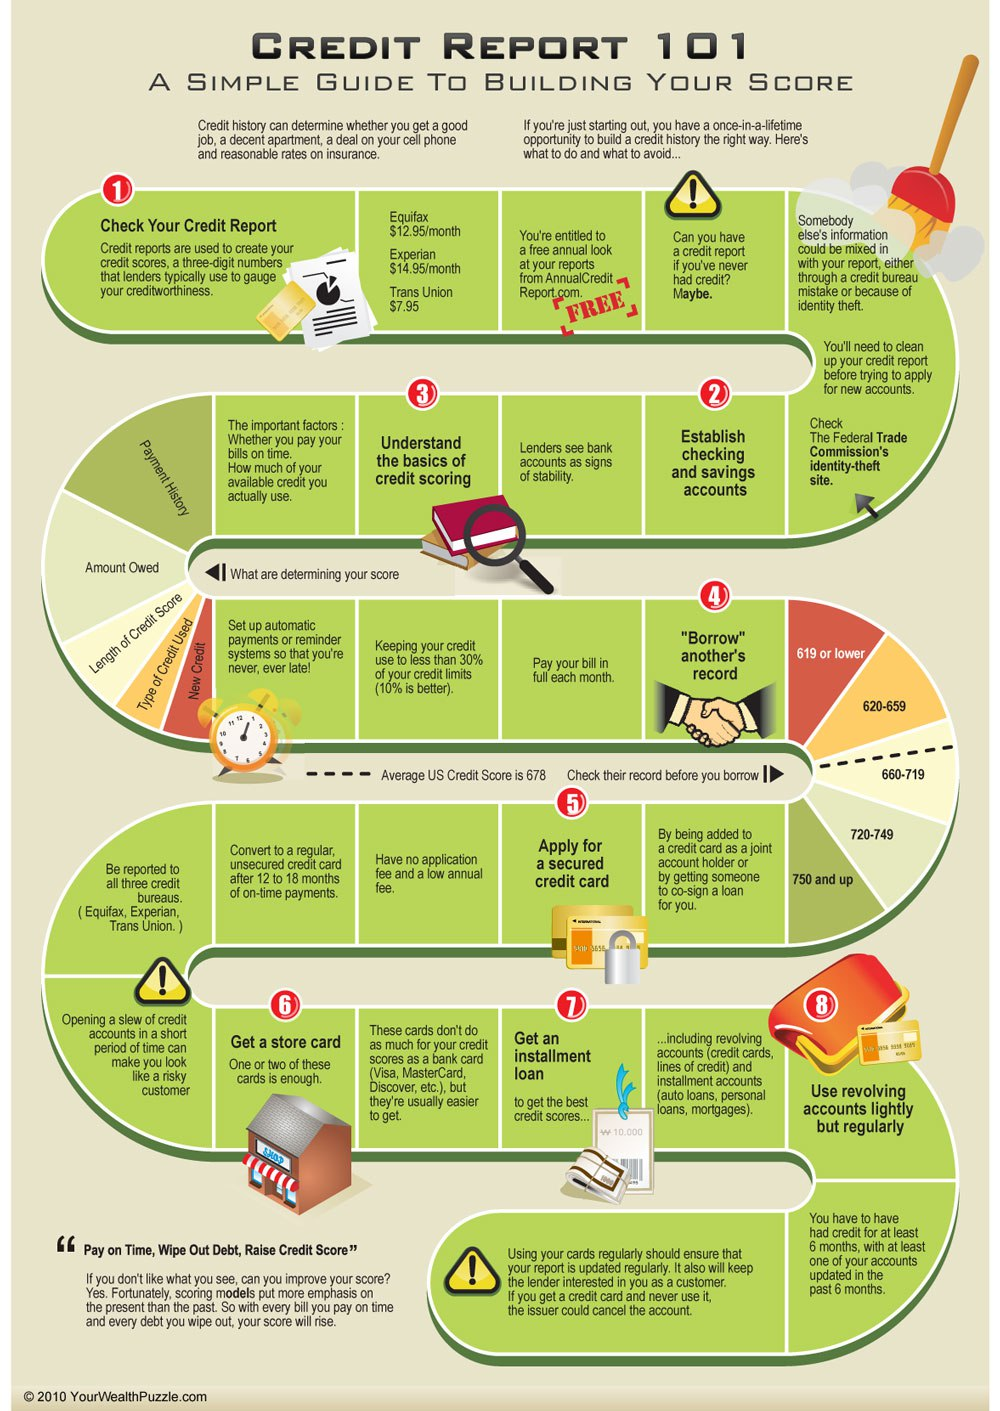 How to improve credit score credit report 101 infographic credit infographic ccuart Image collections